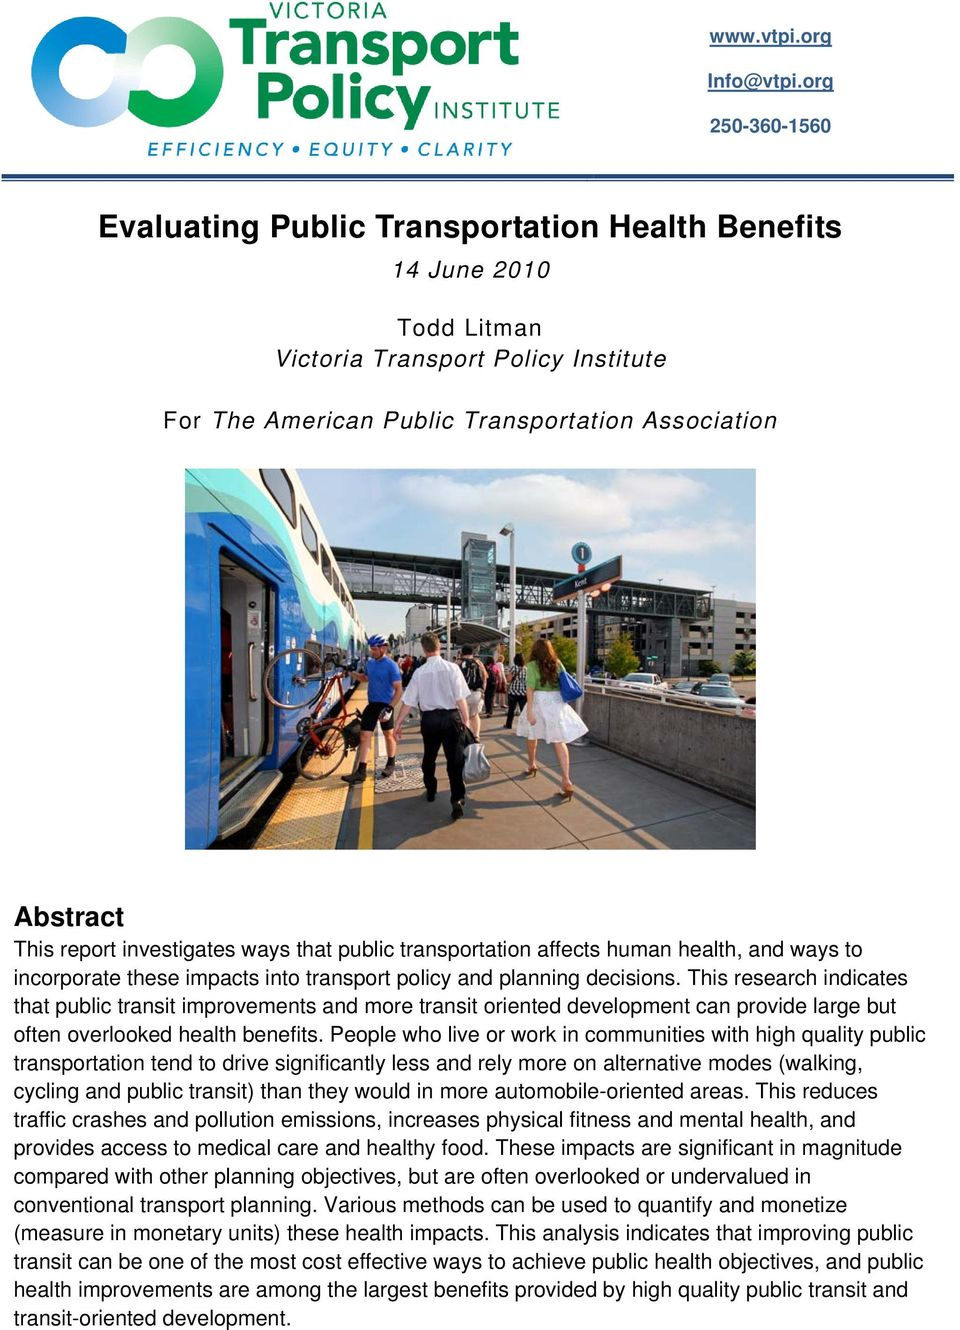 transportation affects human health, and ways to incorporate these impacts into transport policy and planning decisions.